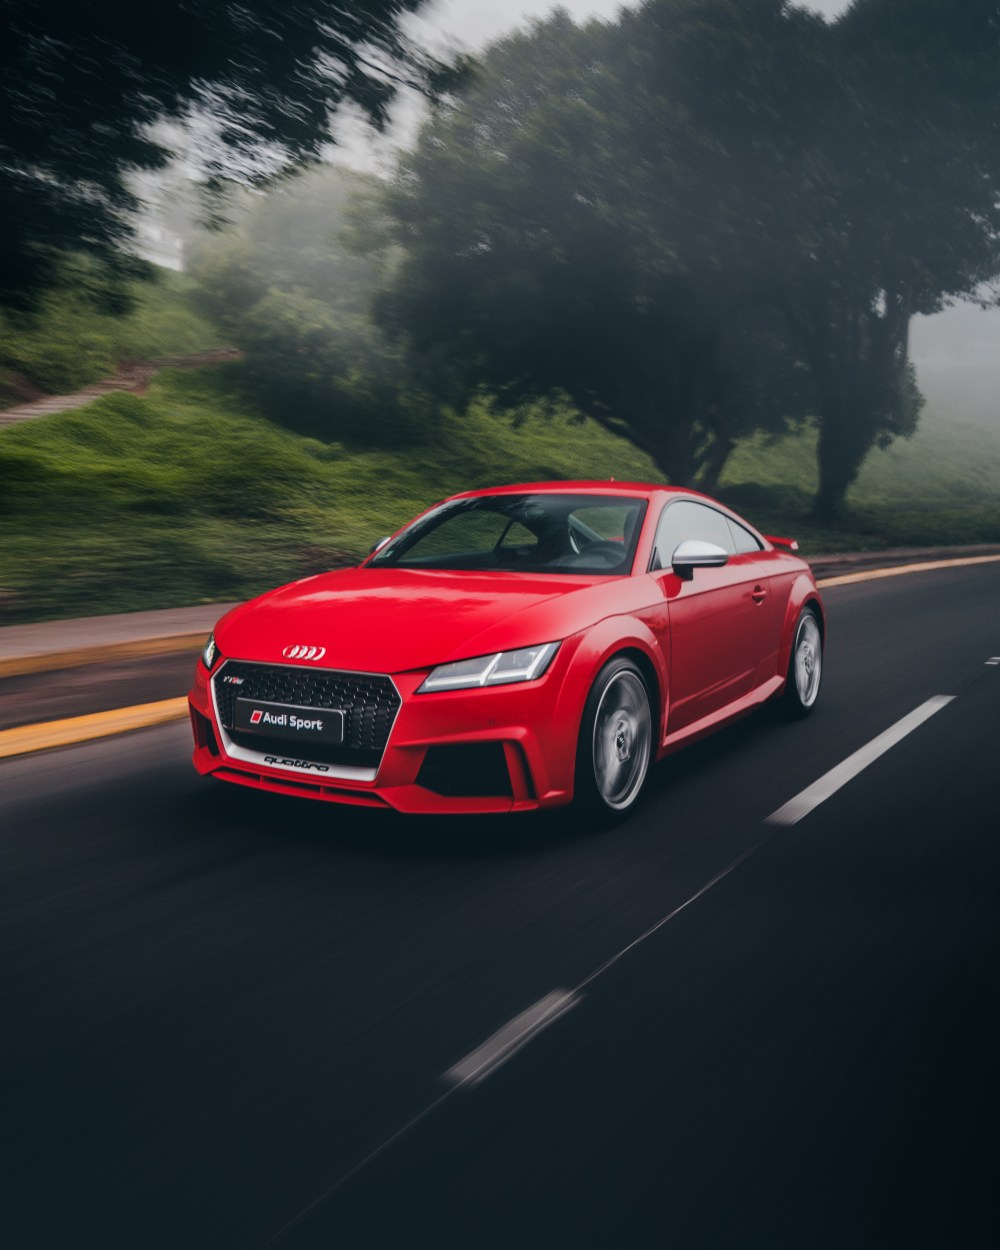 Audi Pictures Download Free Images On Unsplash